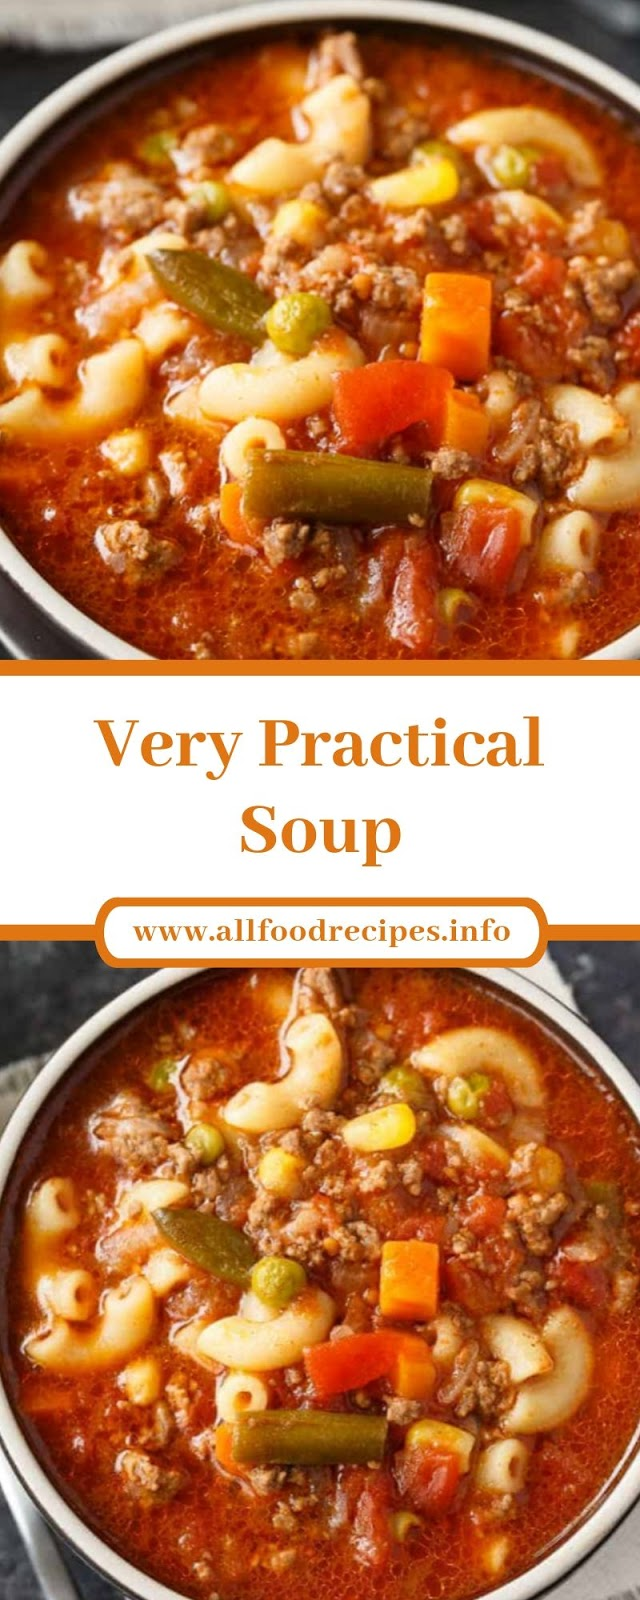 Very Practical Soup